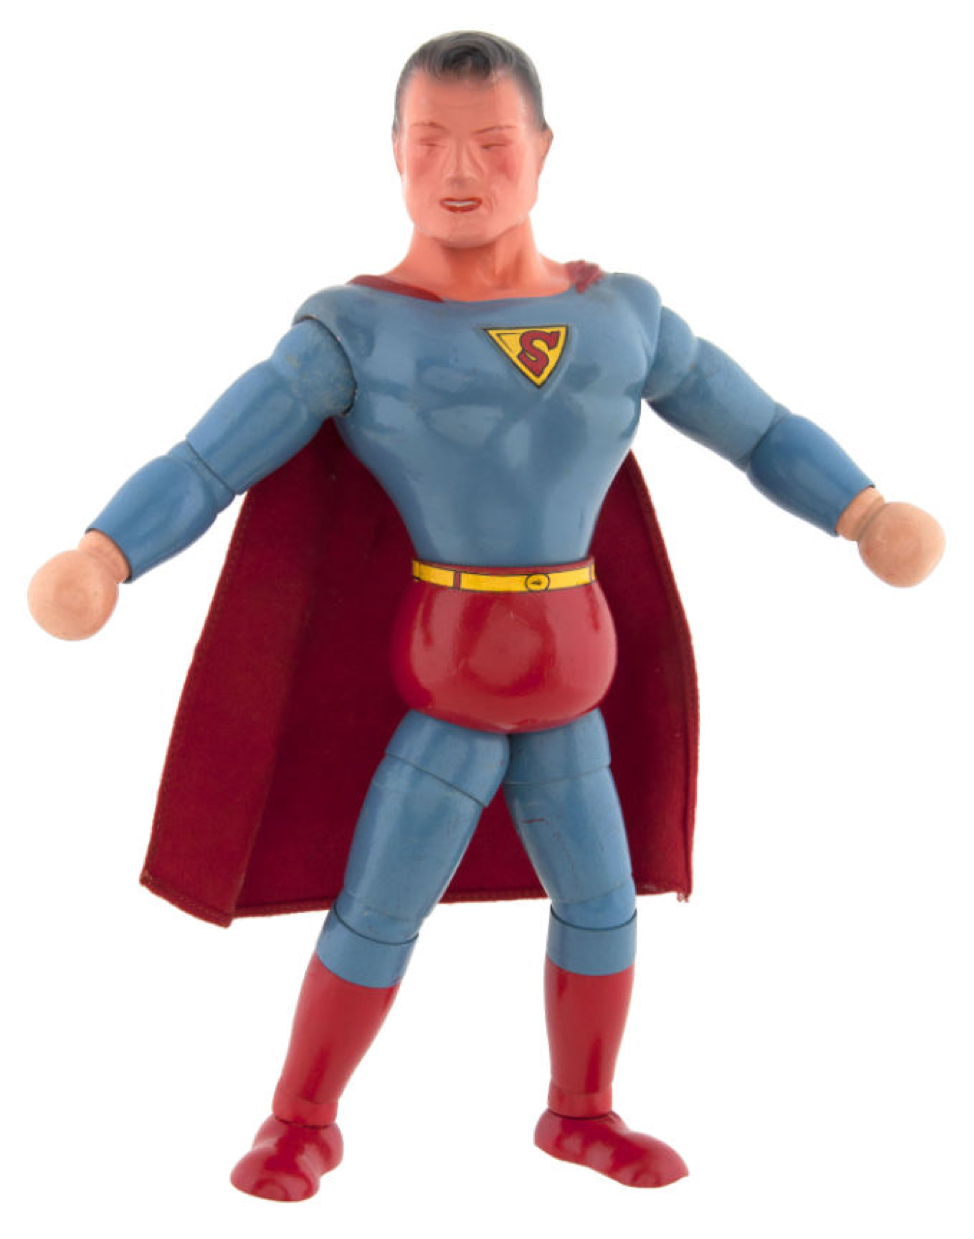 Superman Toy.png